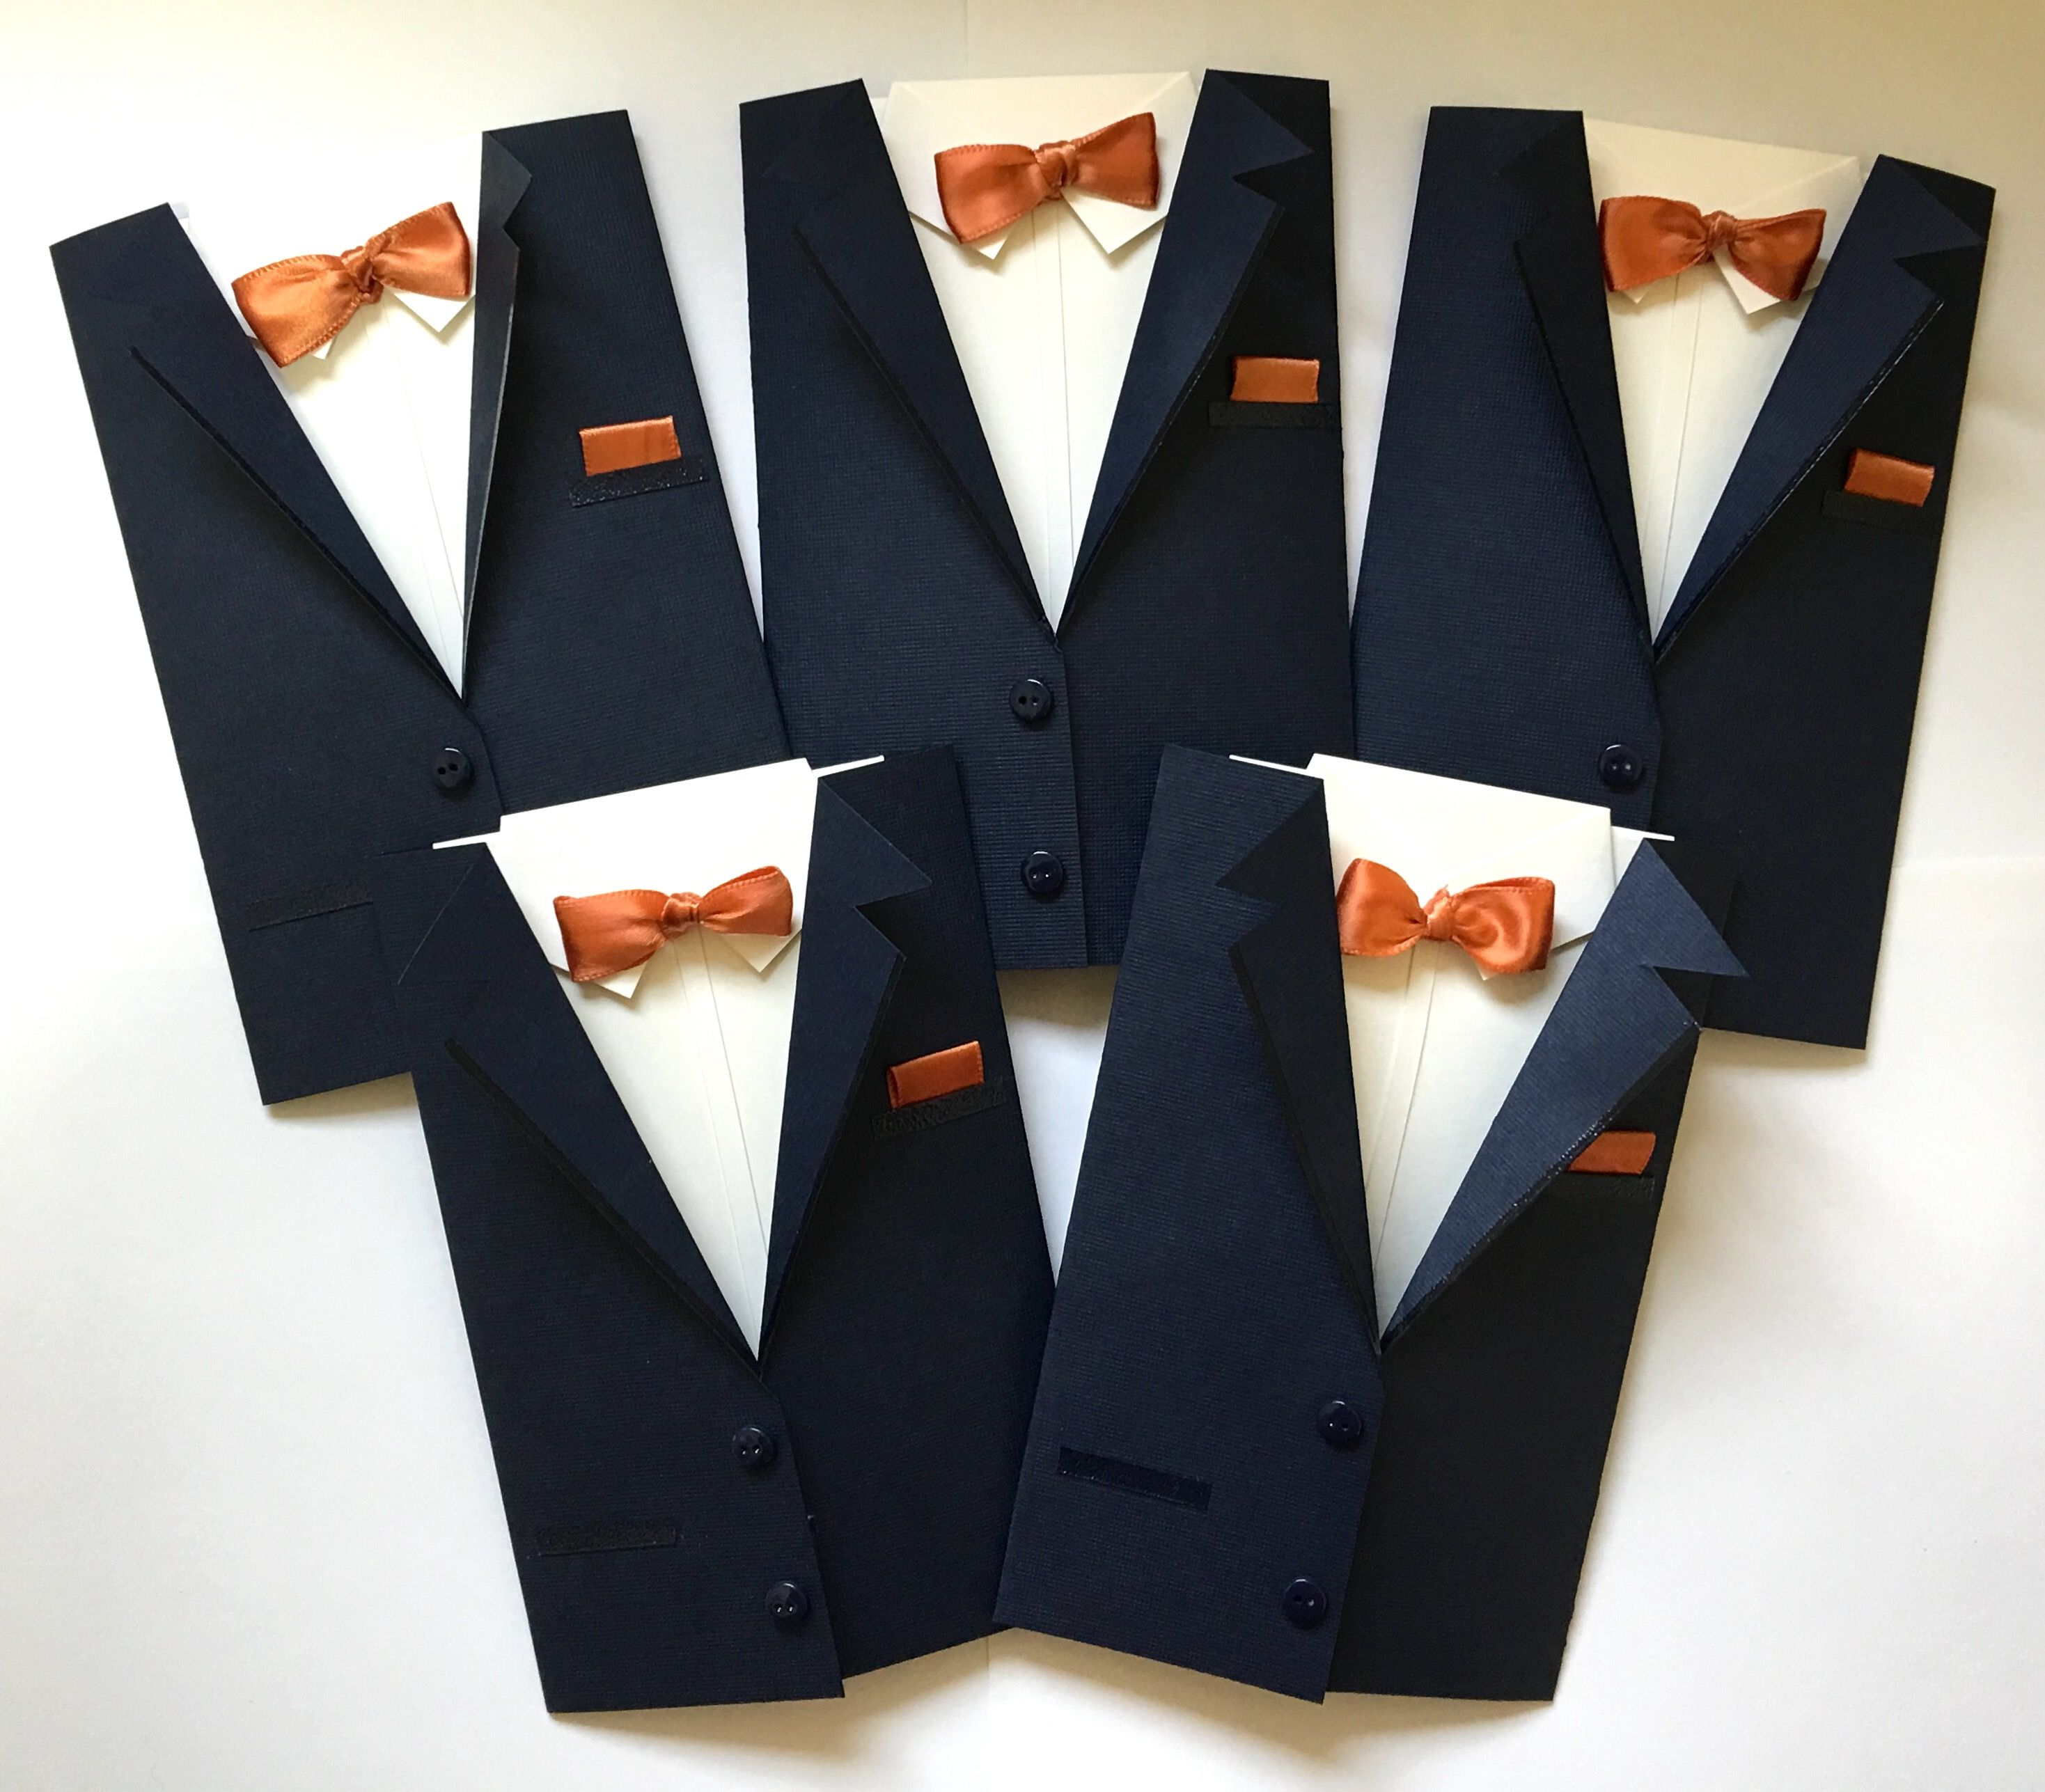 Handmade Groomsman Suit Invite A2 Size Greeting Cards Navy Suits